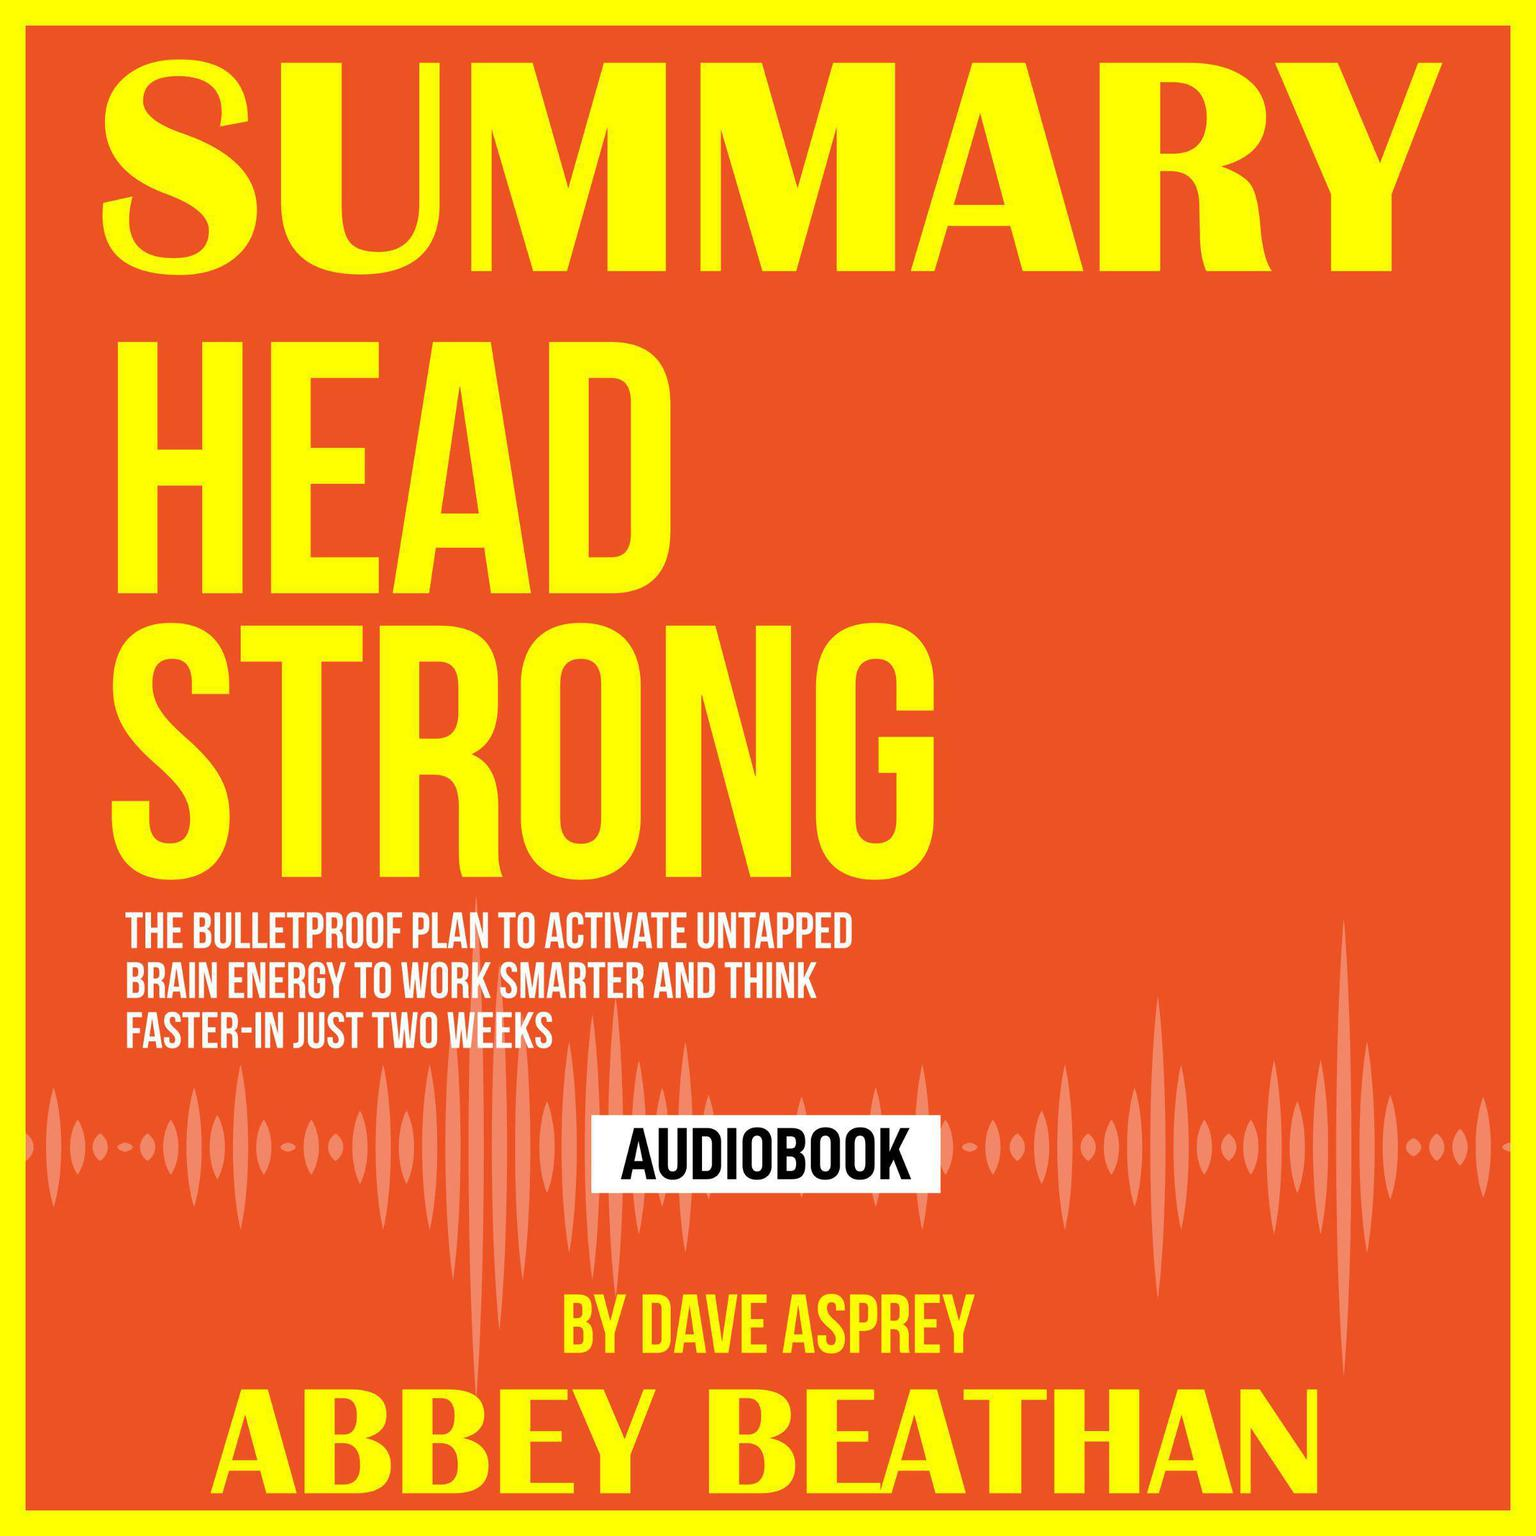 Summary of Head Strong: The Bulletproof Plan to Activate Untapped Brain Energy to Work Smarter and Think Faster-in Just Two Weeks by Dave Asprey Audiobook, by Abbey Beathan